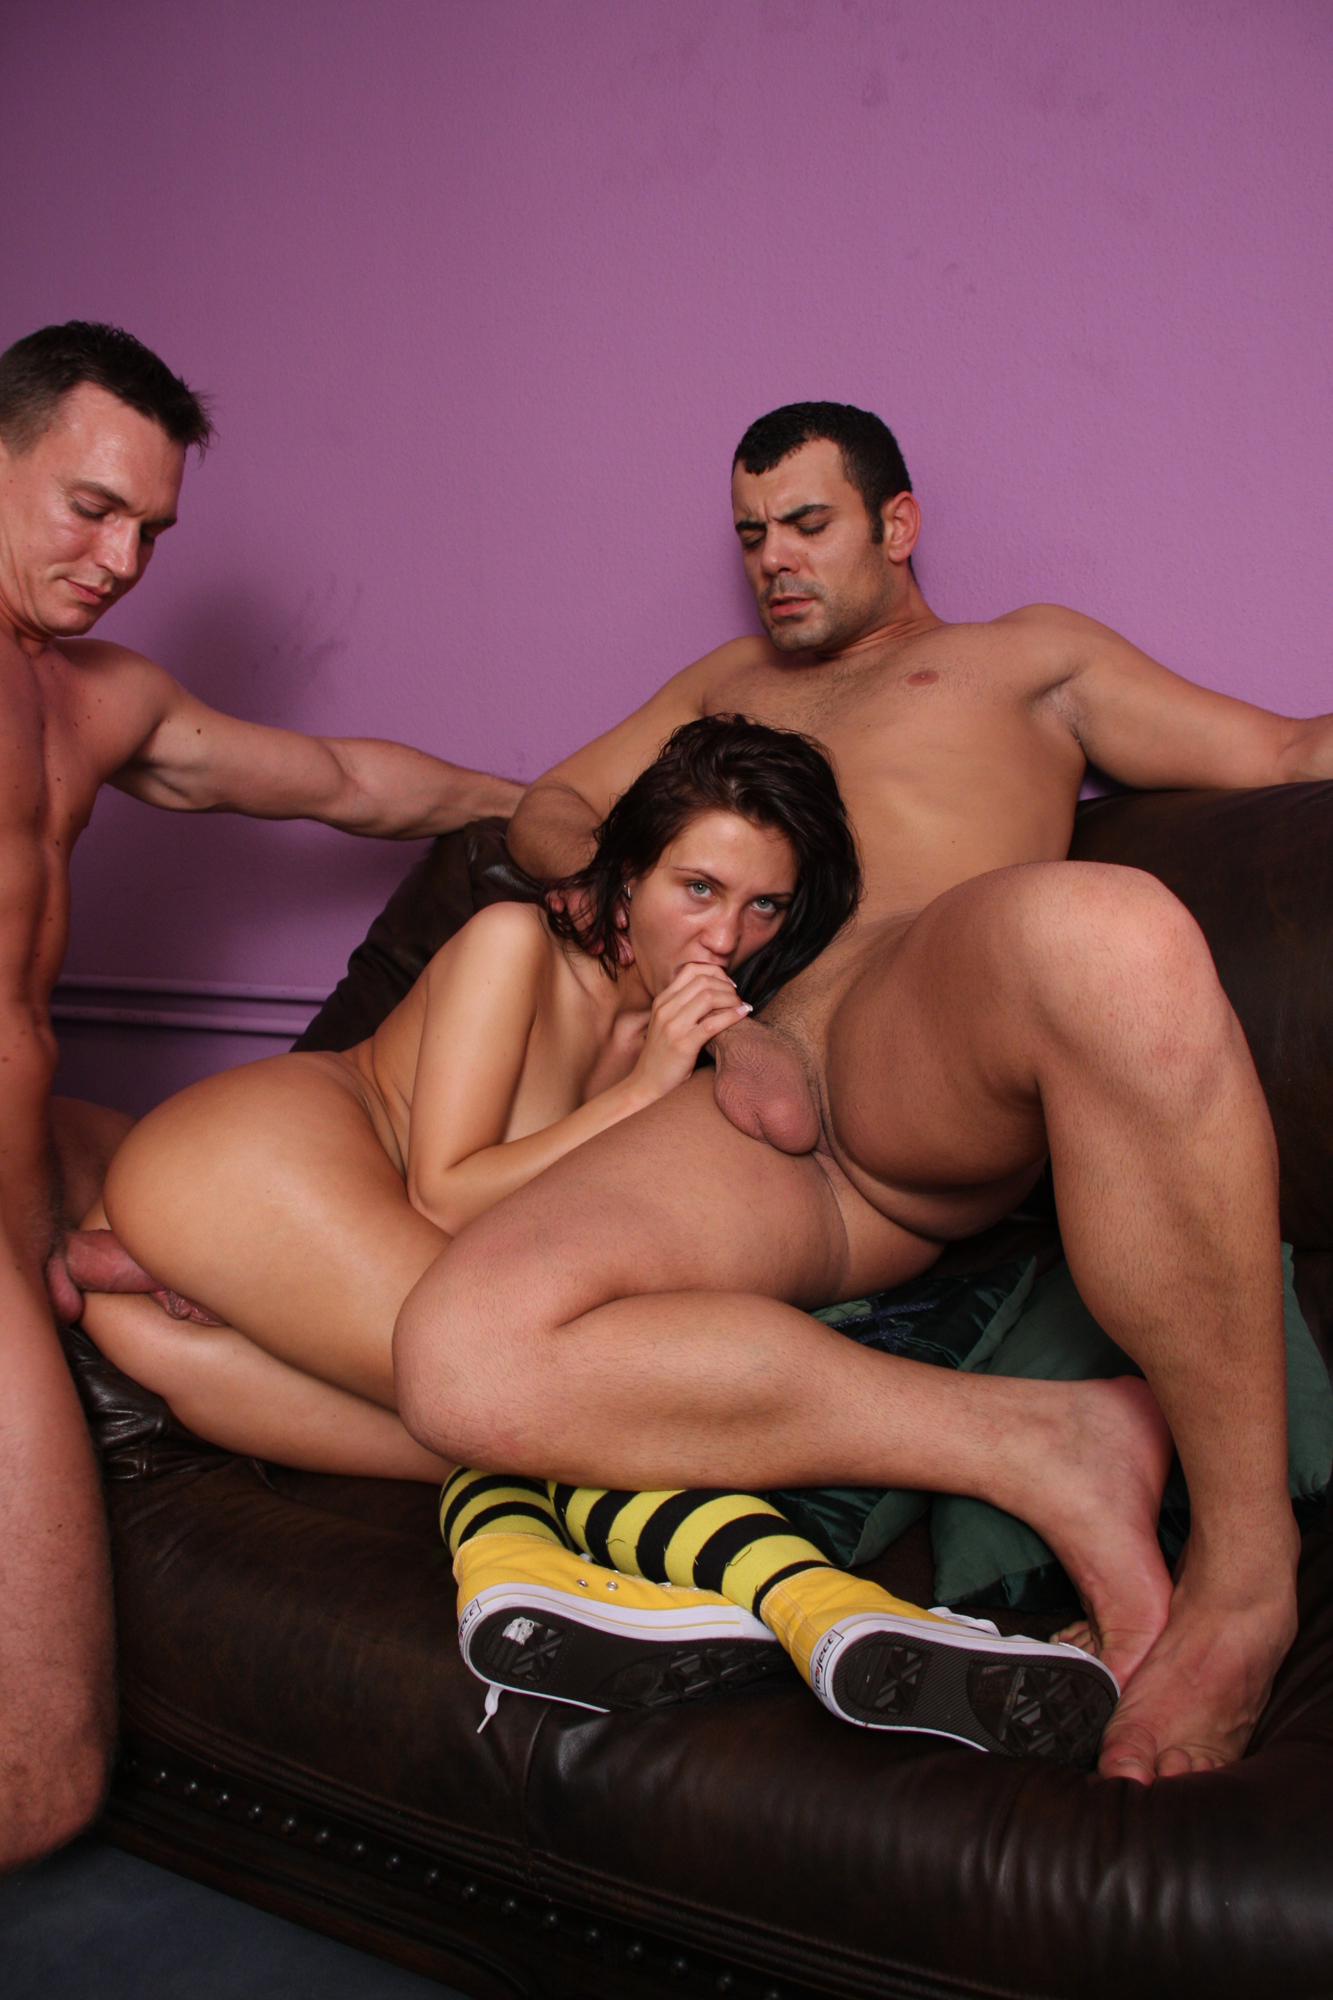 college rules dorm college sex party hot girls wallpaper